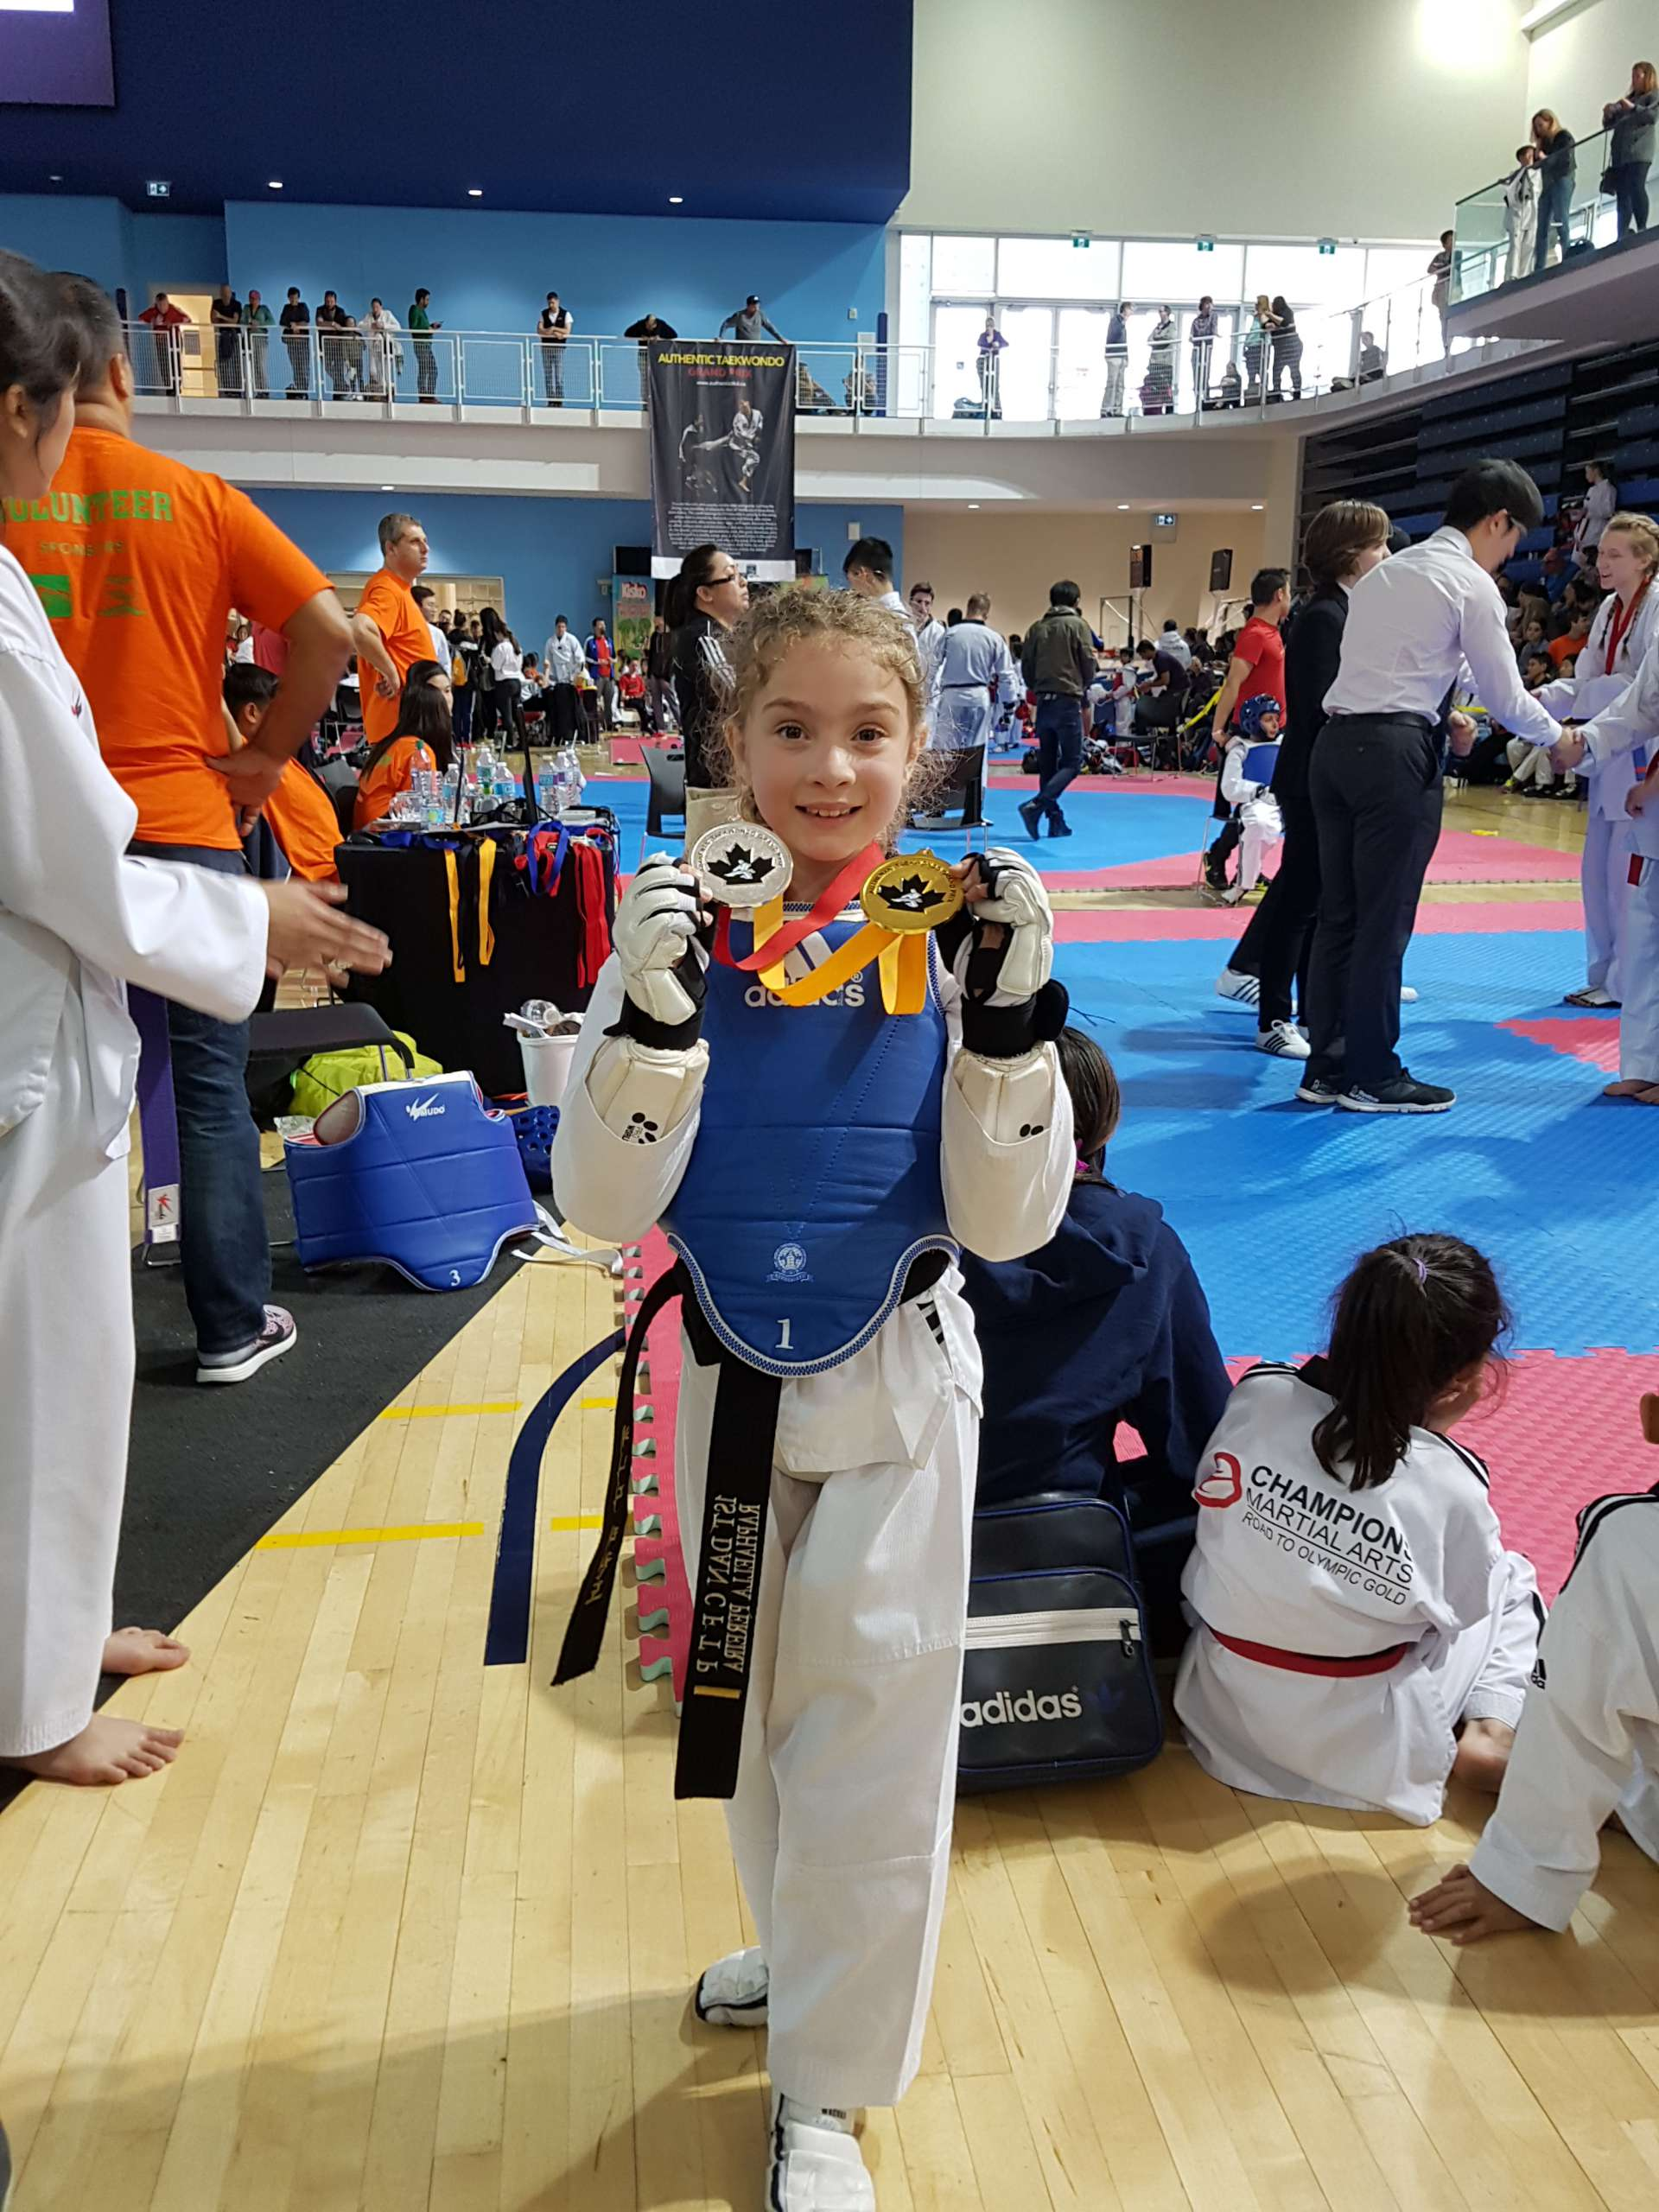 young girl showing medals won from black belt taekwondo tournament